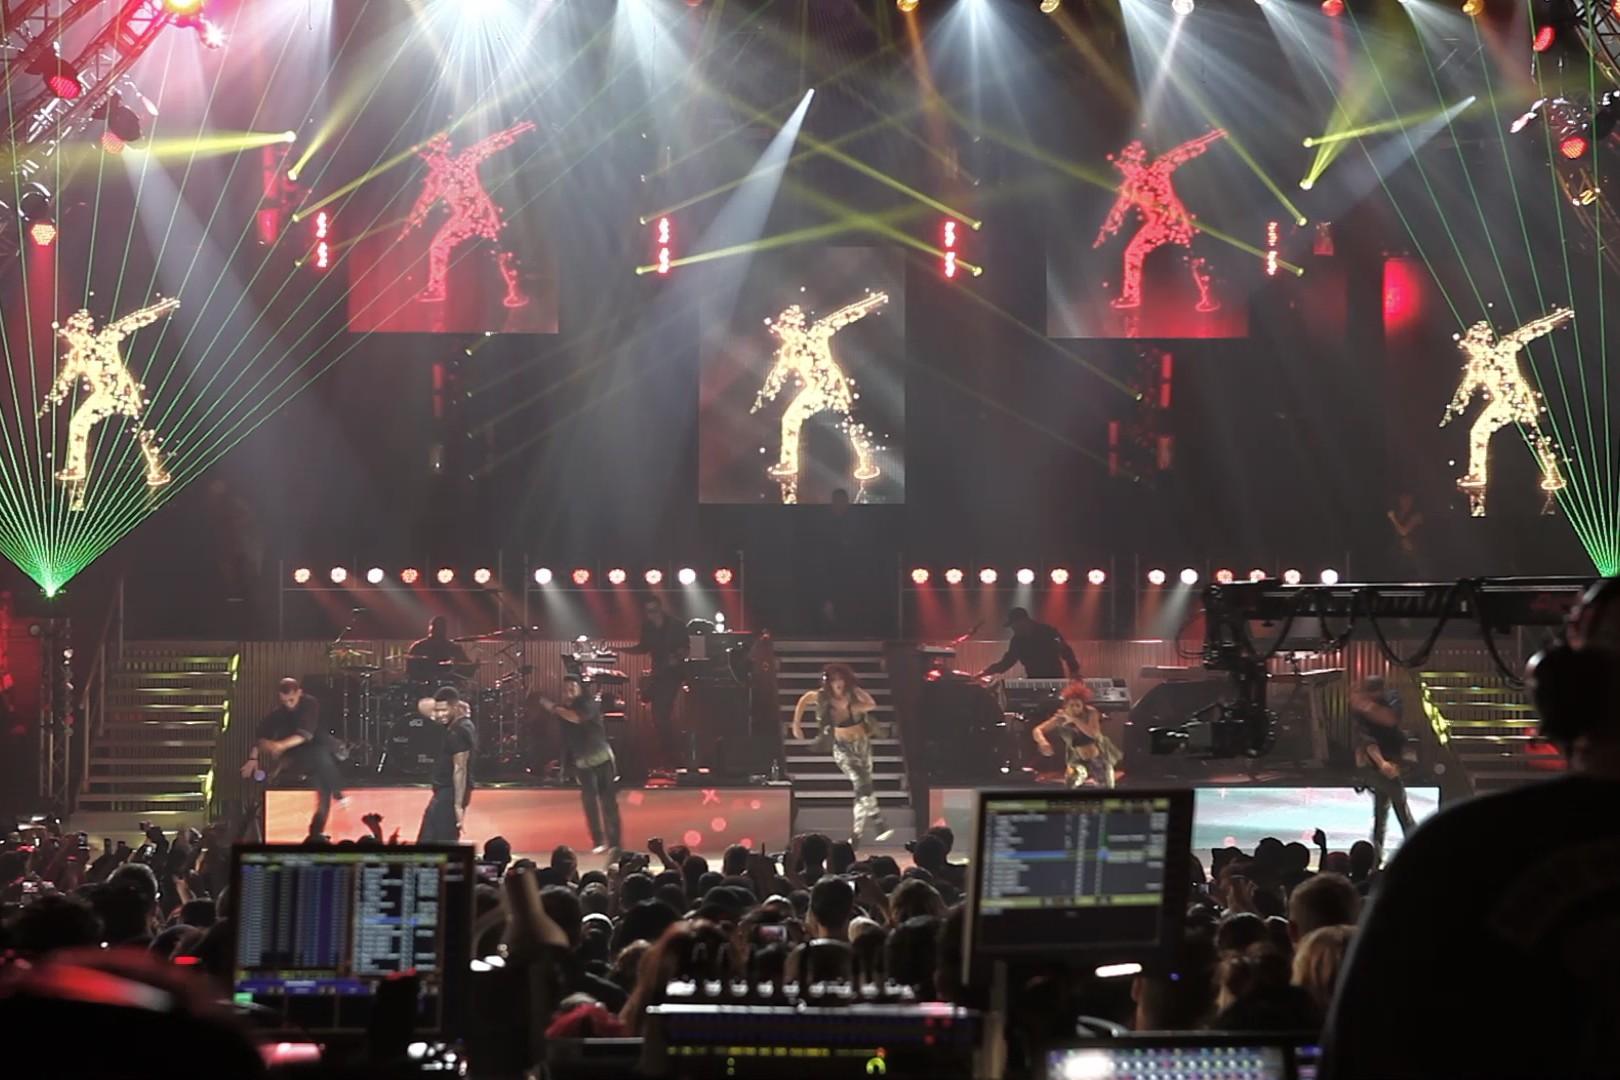 Moment Factory Provide Virtual Dancers And Live Tweeting At Usher's London Show [Q&A]